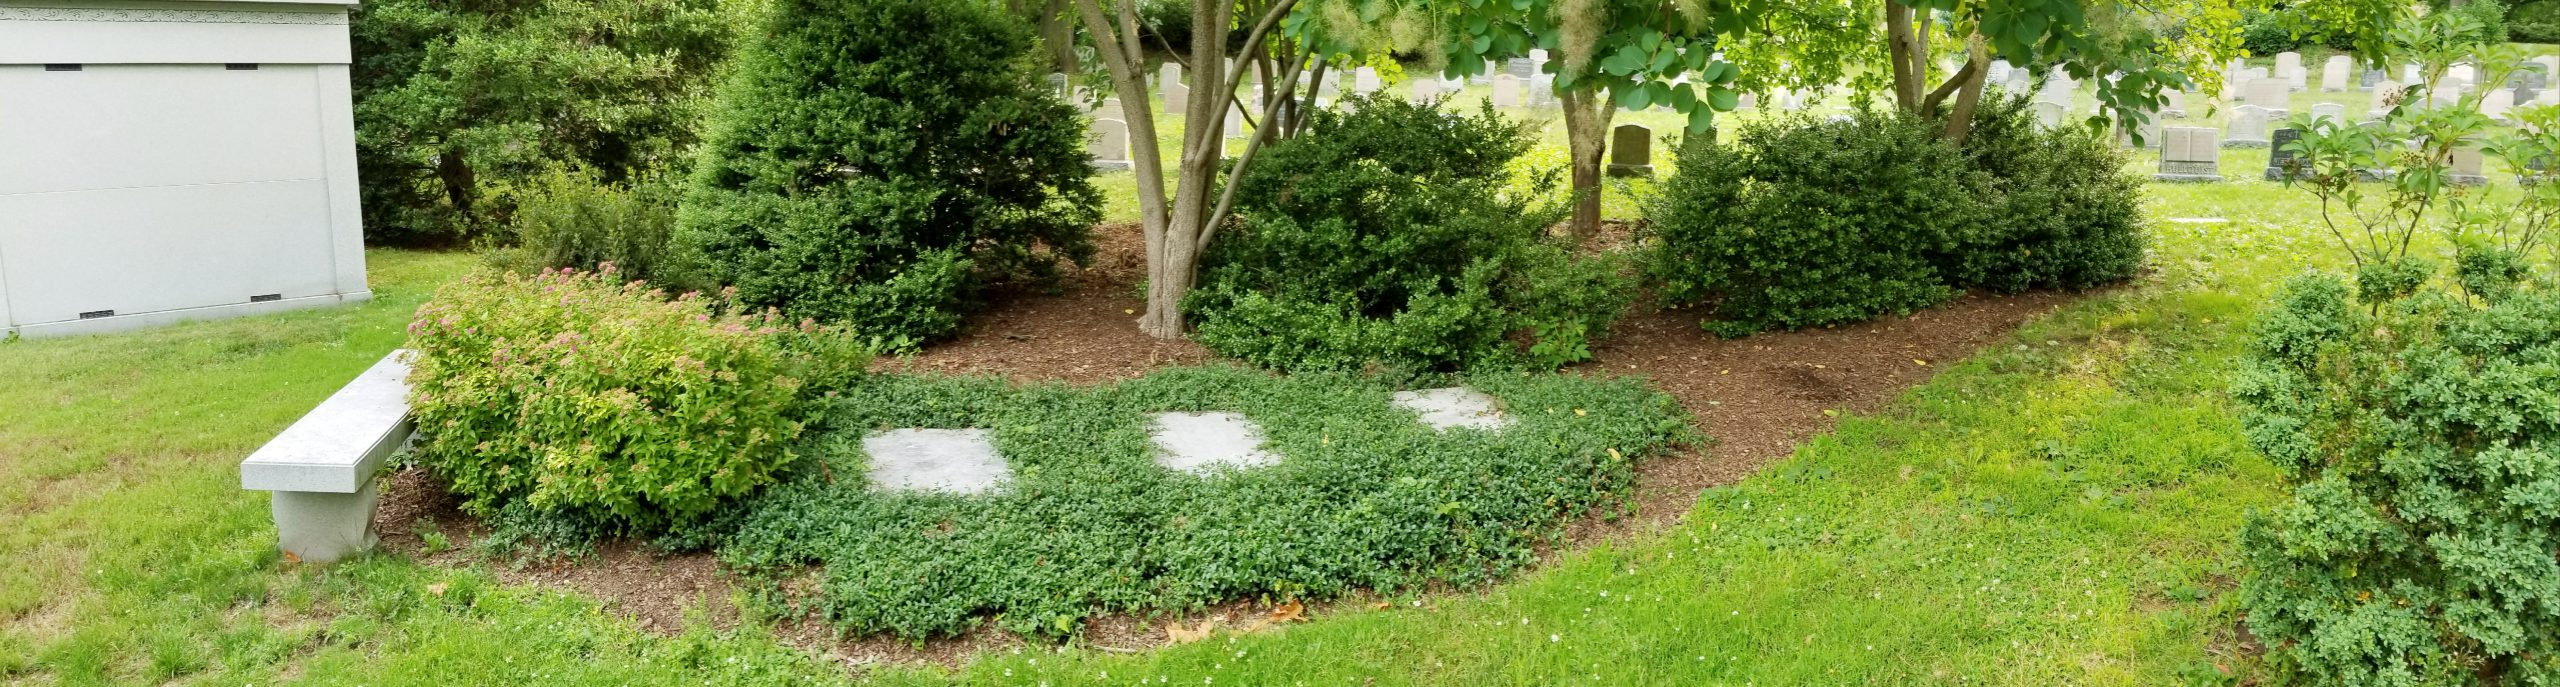 Three granite tablets are set into a bed of groundcover and surrounded by ornamental trees and shrubs. Names and dates of people buried in the garden are inscribed on the granite stones. A bench at the edge of the garden gives visitors a place to sit.